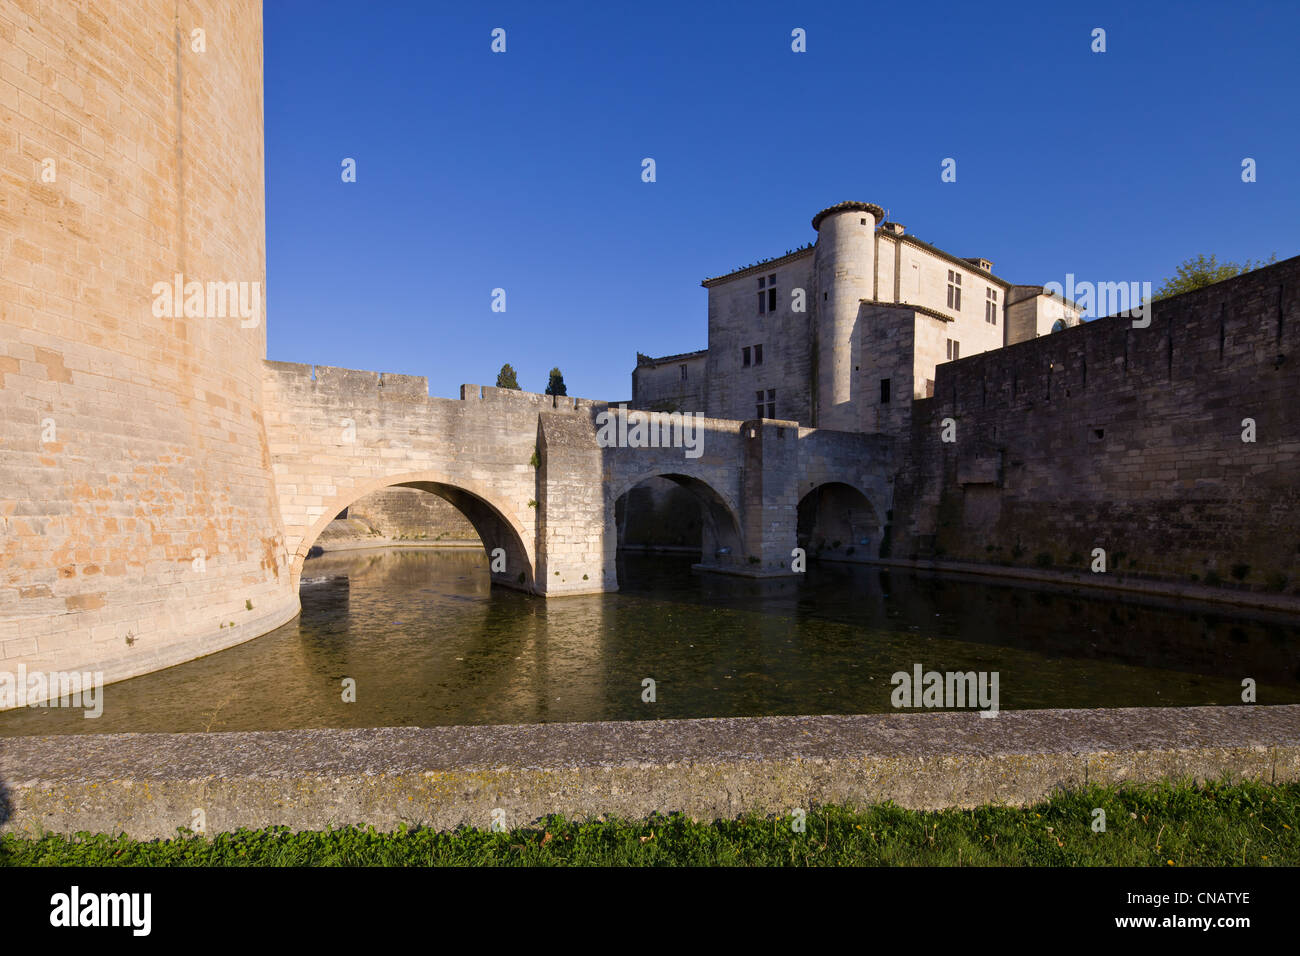 France, Gard, Aigues Mortes, Constance Tower and the remparts seen from the Crusades quay - Stock Image